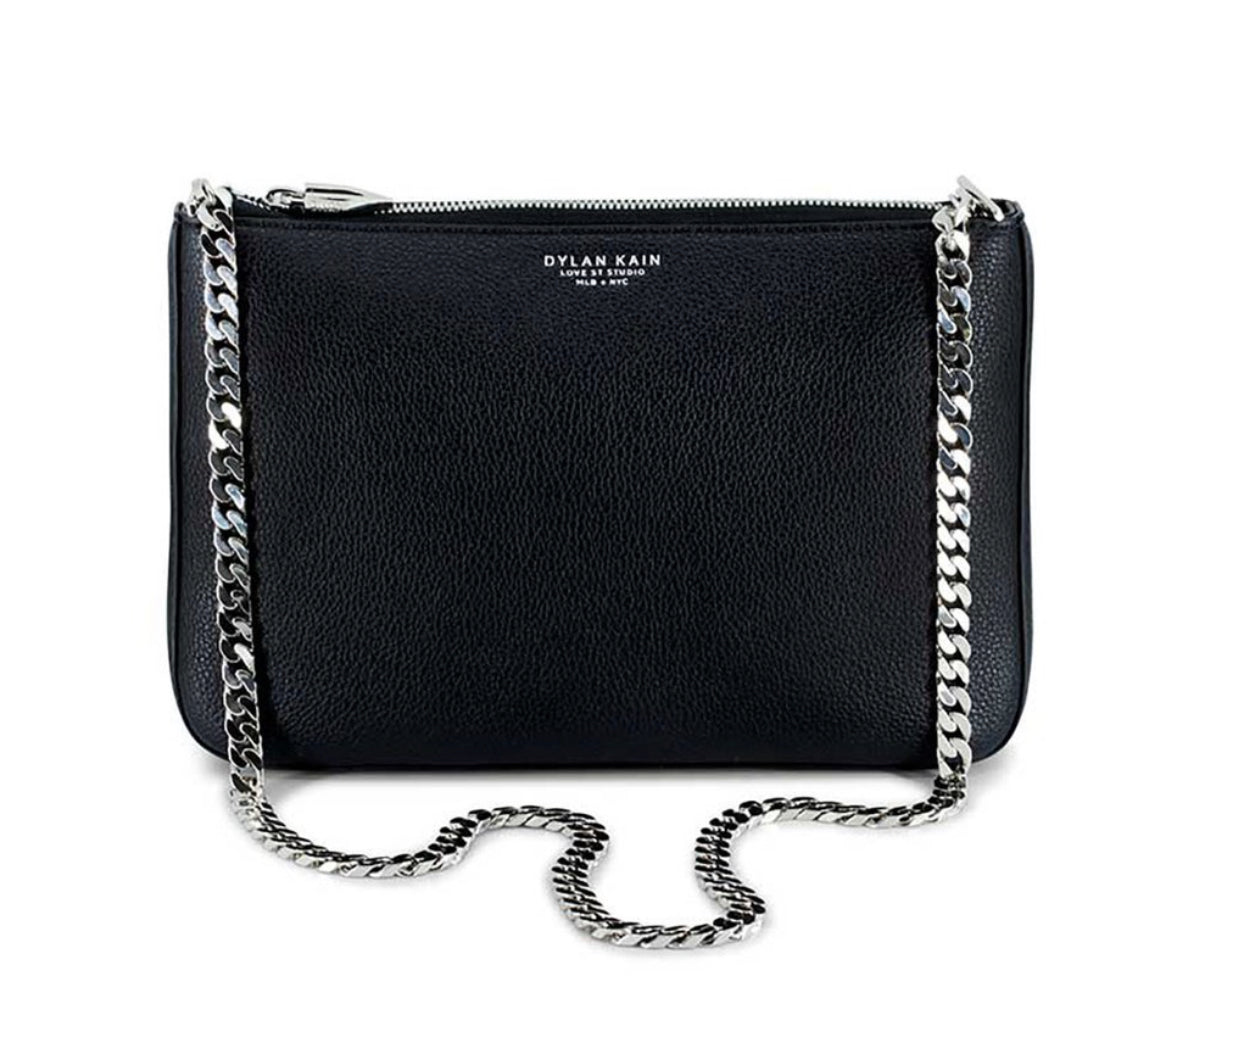 Dylan Kain The Chloe Shoulder Bag - Silver